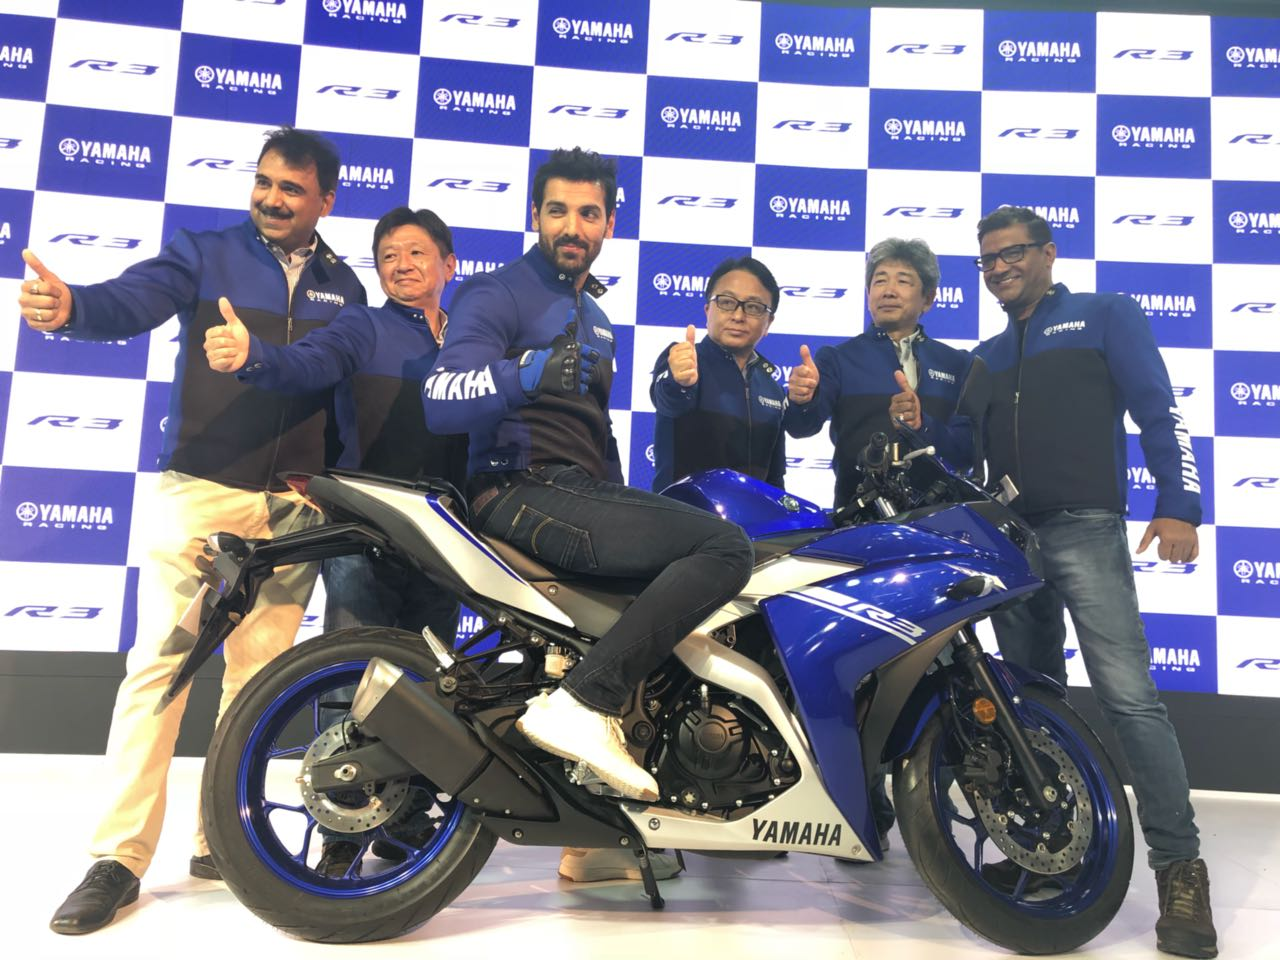 "<p><a href=""http://overdrive.in/news-cars-auto/auto-expo-2018-new-yamaha-yzf-r3-with-dual-channel-abs-launched-in-india-at-rs-3-48-lakh/"">The Yamaha YZF-R3 was unveiled by John Abraham. It is priced at Rs. 3.48 lakh, ex-showroom, Delhi. </a>Bookings will open today!  Delivery by month end</p>"